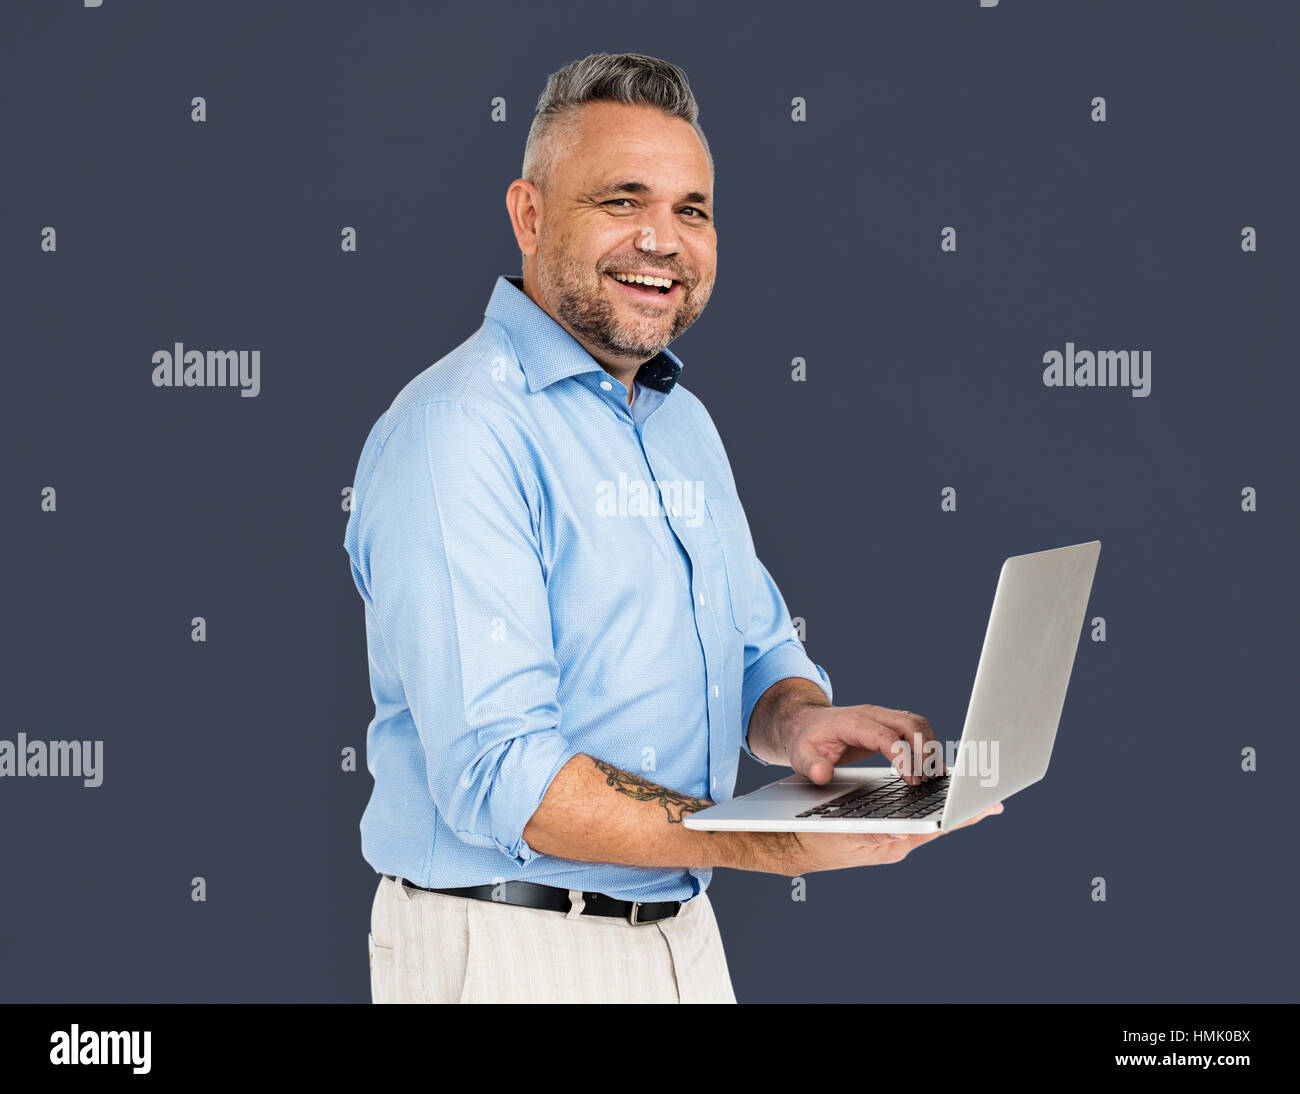 Cheerful Man Technology Gadget Concept - Stock Image